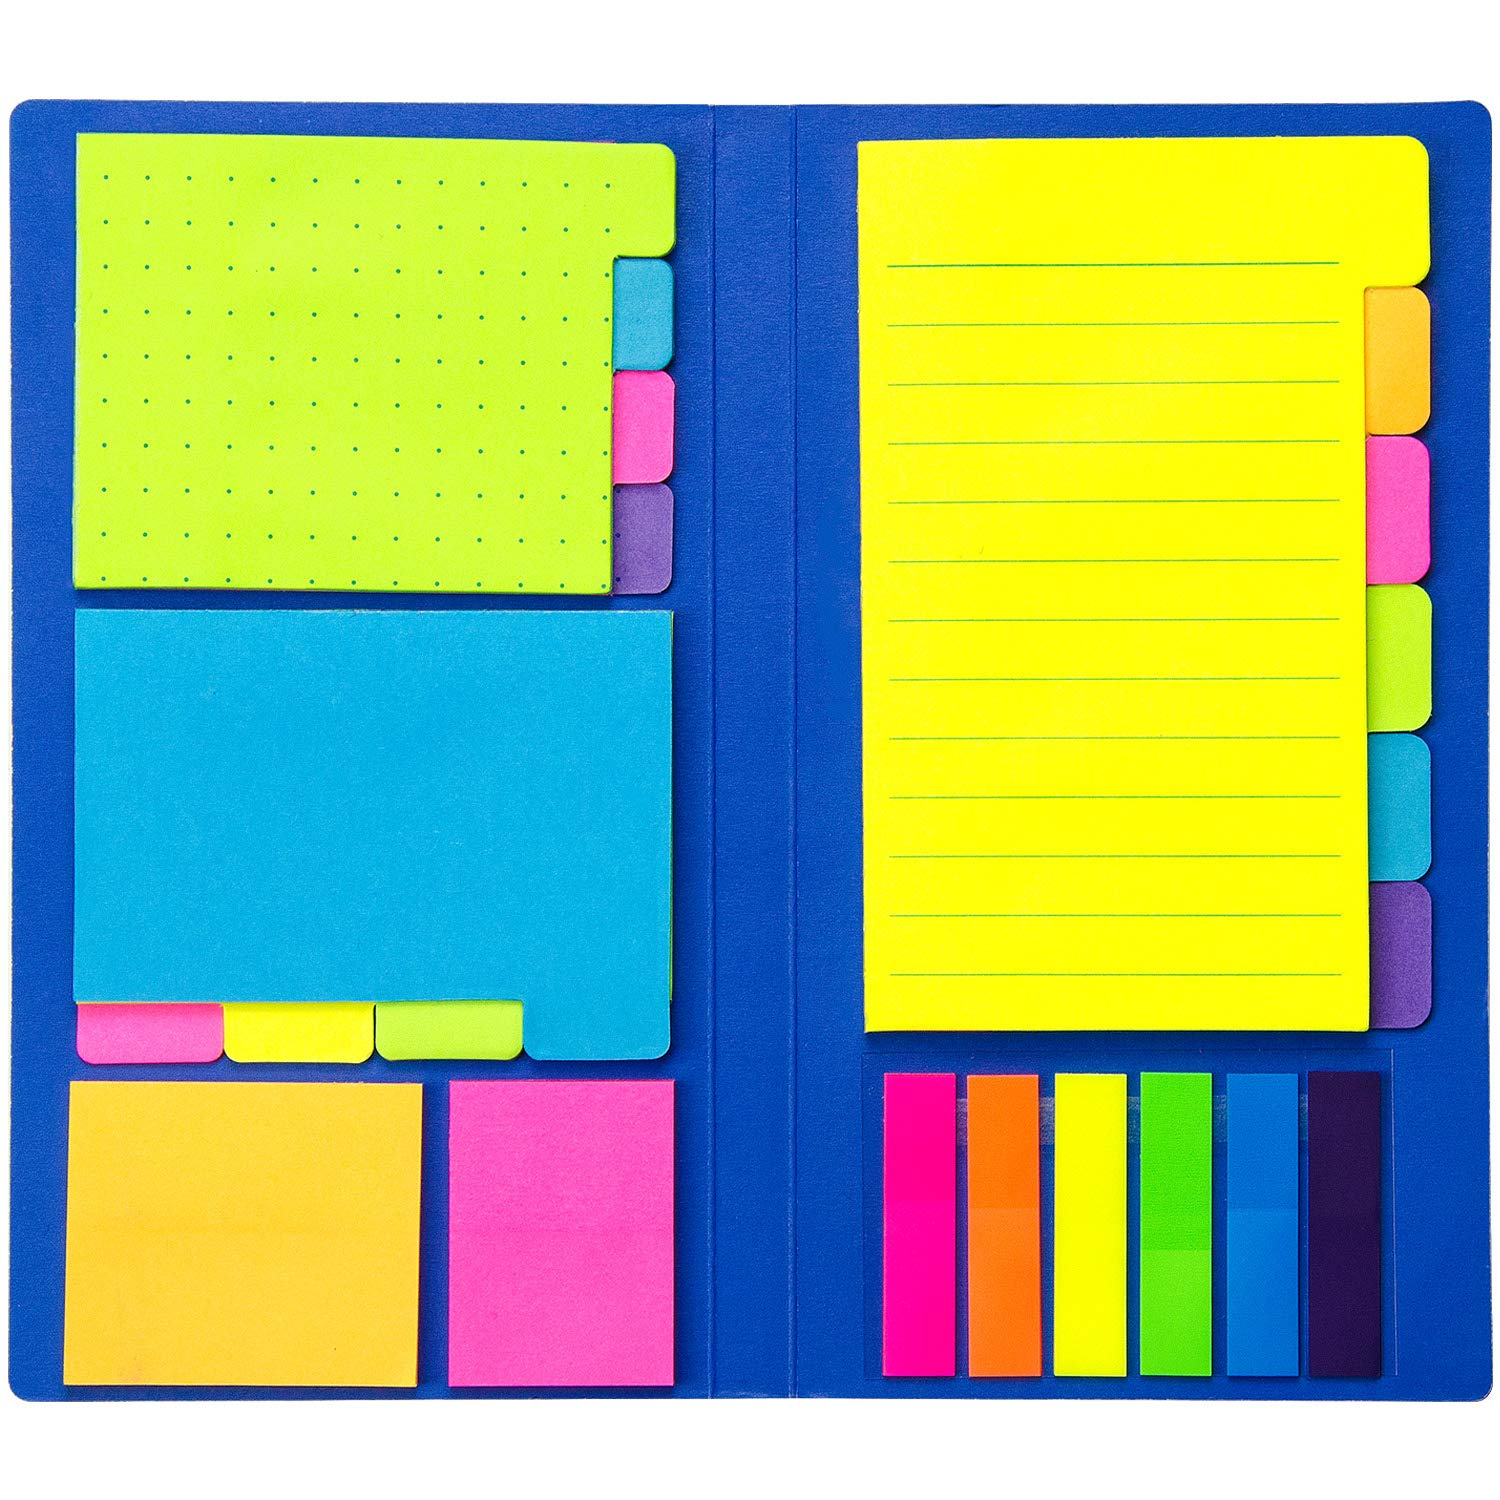 Colored Divider Sticky Notes Bundle Set by heartybay, Prioritize with Color Coding, 60 Ruled (4x6), 48 Dotted (3x4), 48 Blank (4x3), 48 Orange and Pink, 25 per PET Color - 402 pcs